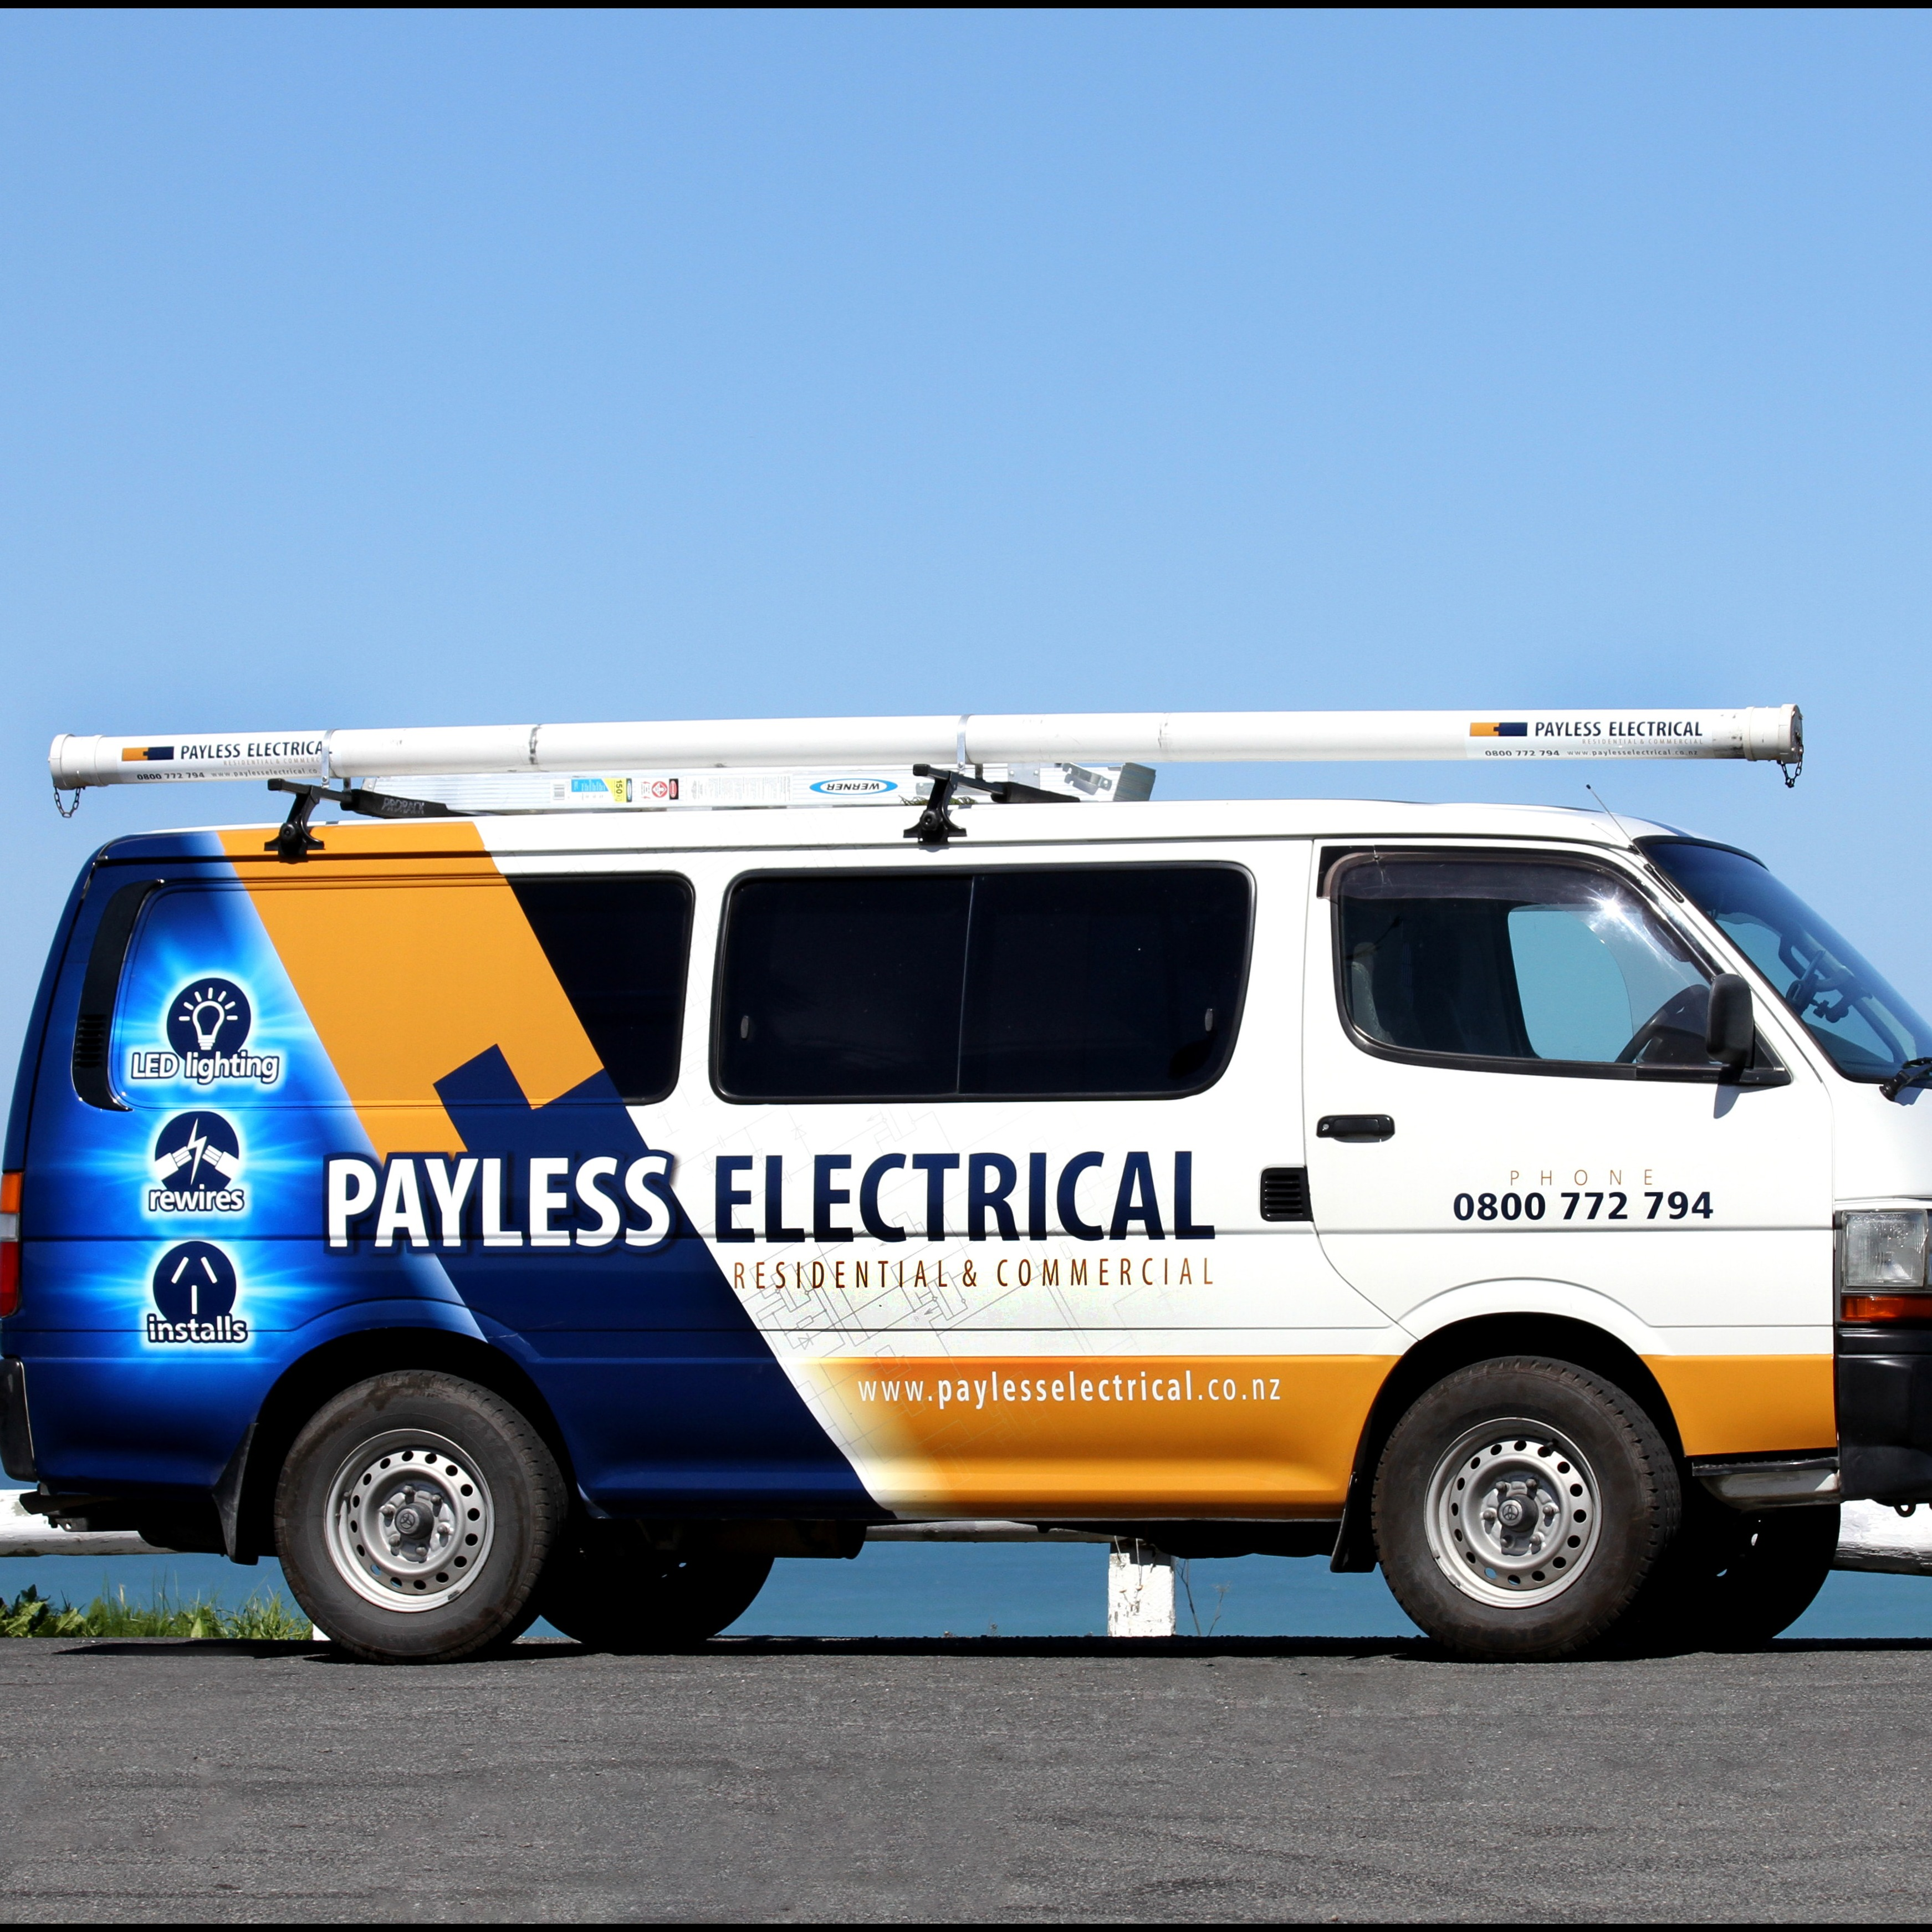 Payless Electrical